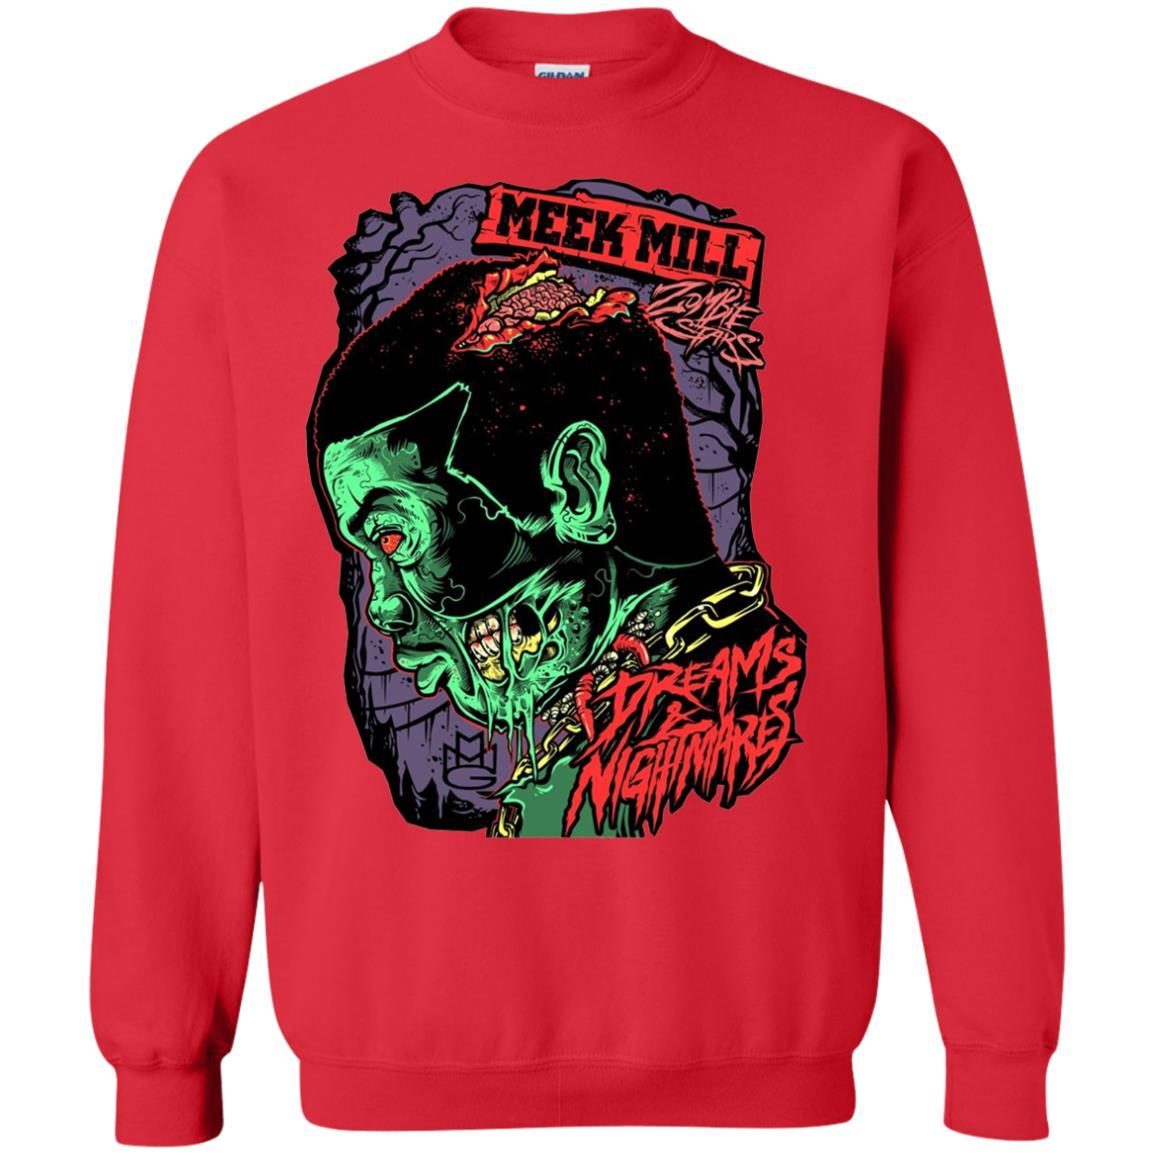 Meek Mill Zombie Tee Shirt Halloween - Crewneck Pullover Sweatshirt Red / 5XL